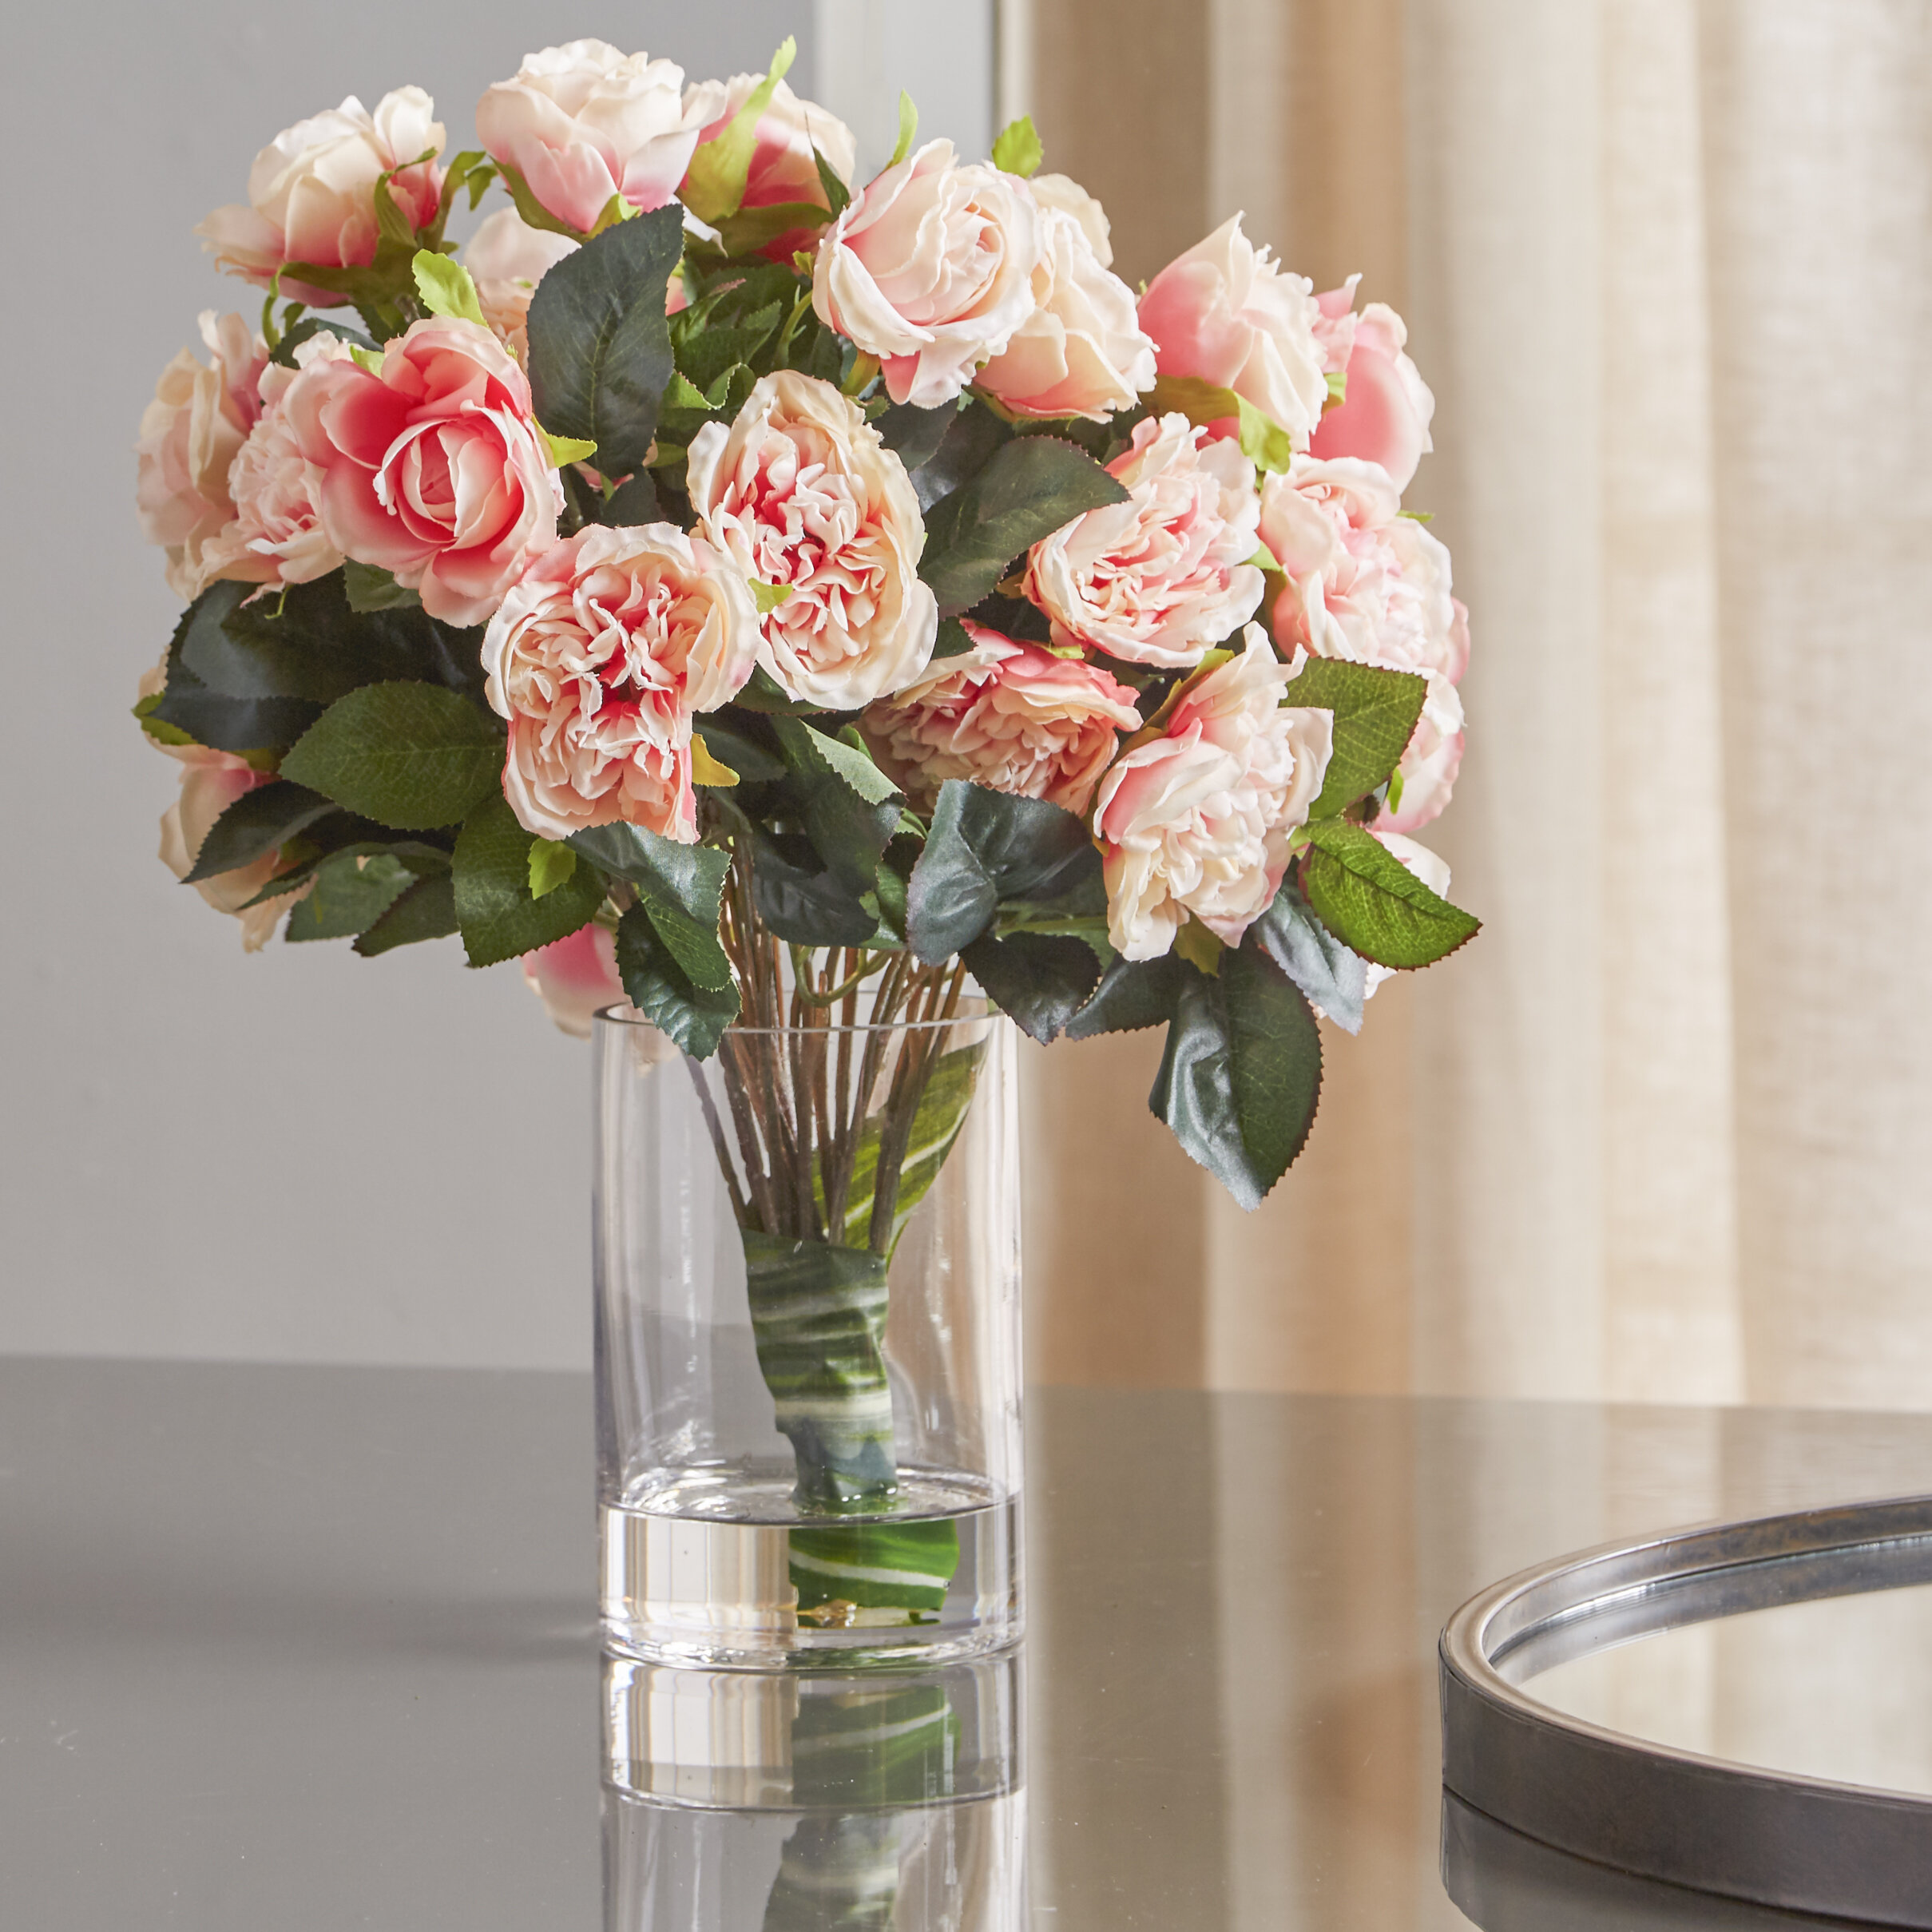 Rose Centerpiece in Decorative Vase